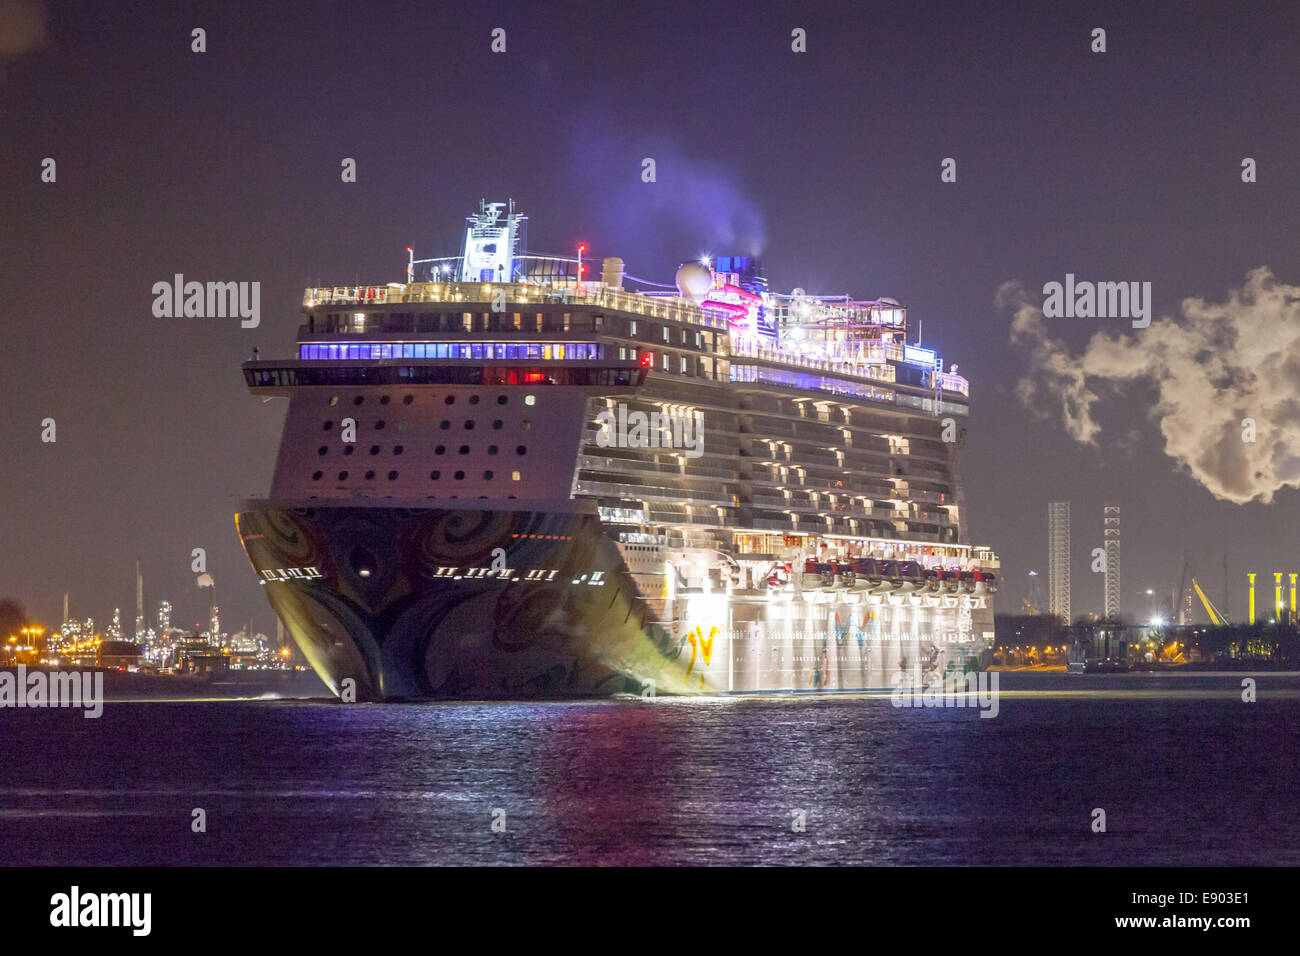 Nightly departure of Norwegian Getaway cruise ship of the Norwegian Cruise Line (NCL) from Rotterdam Port Holland - Stock Image